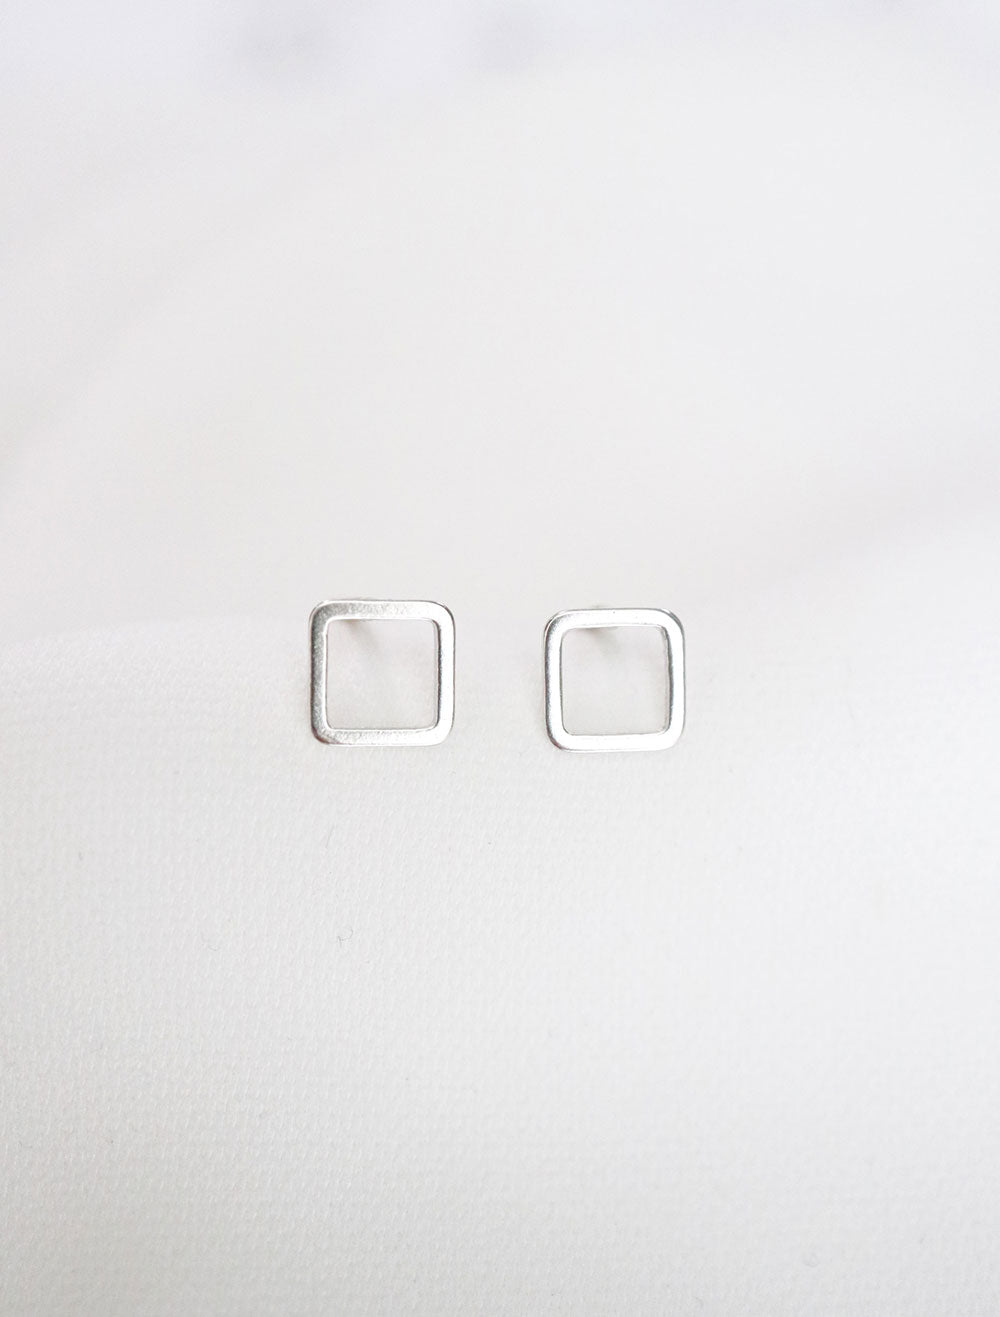 sterling silver open square stud earrings